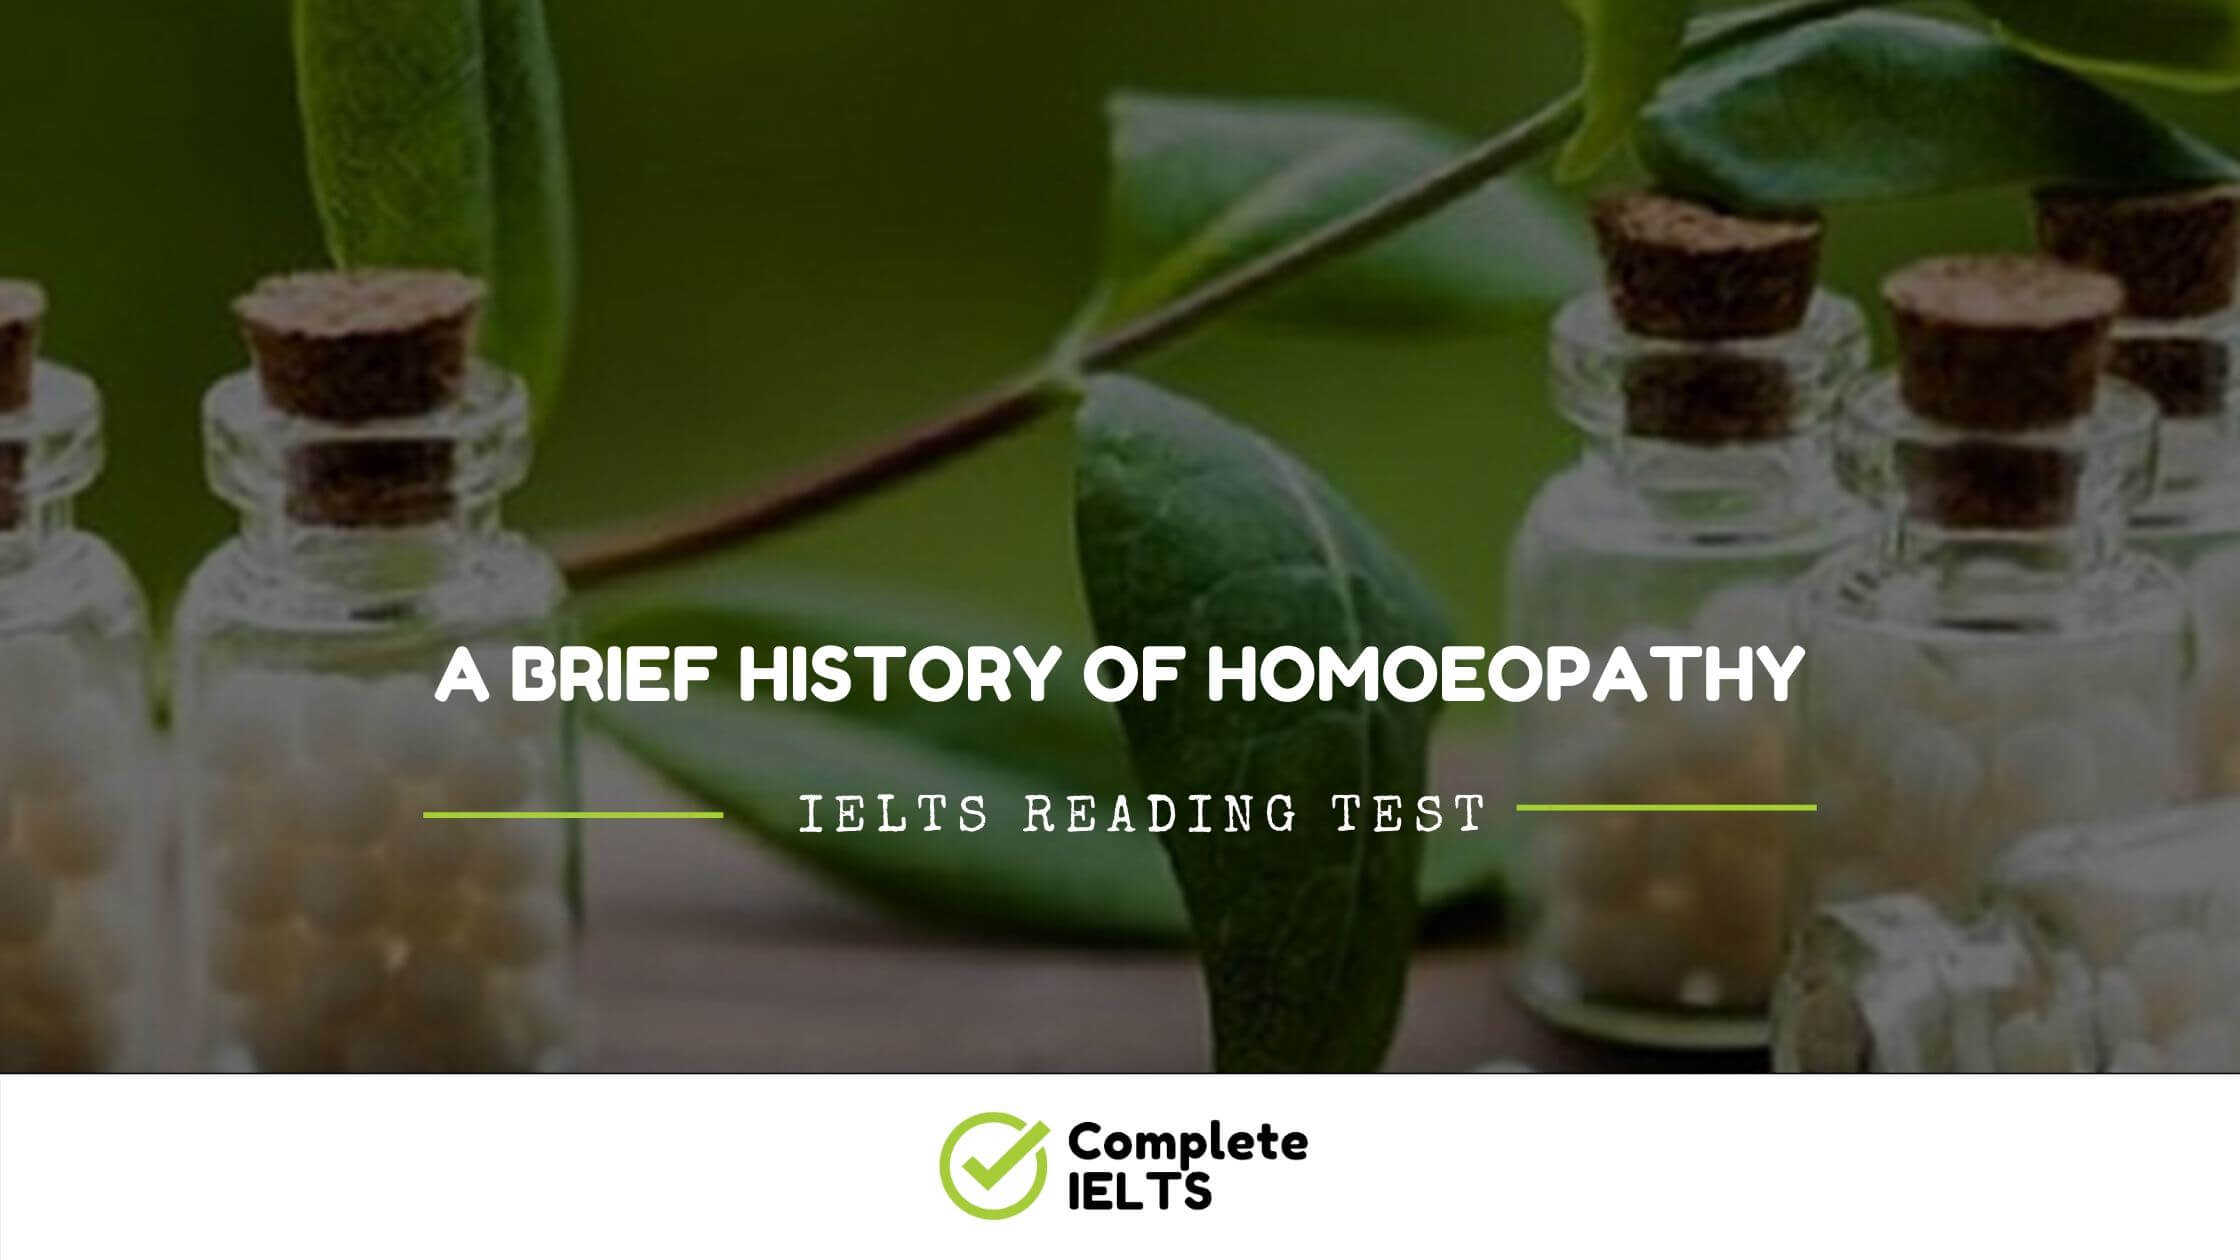 A brief history of homoeopathy